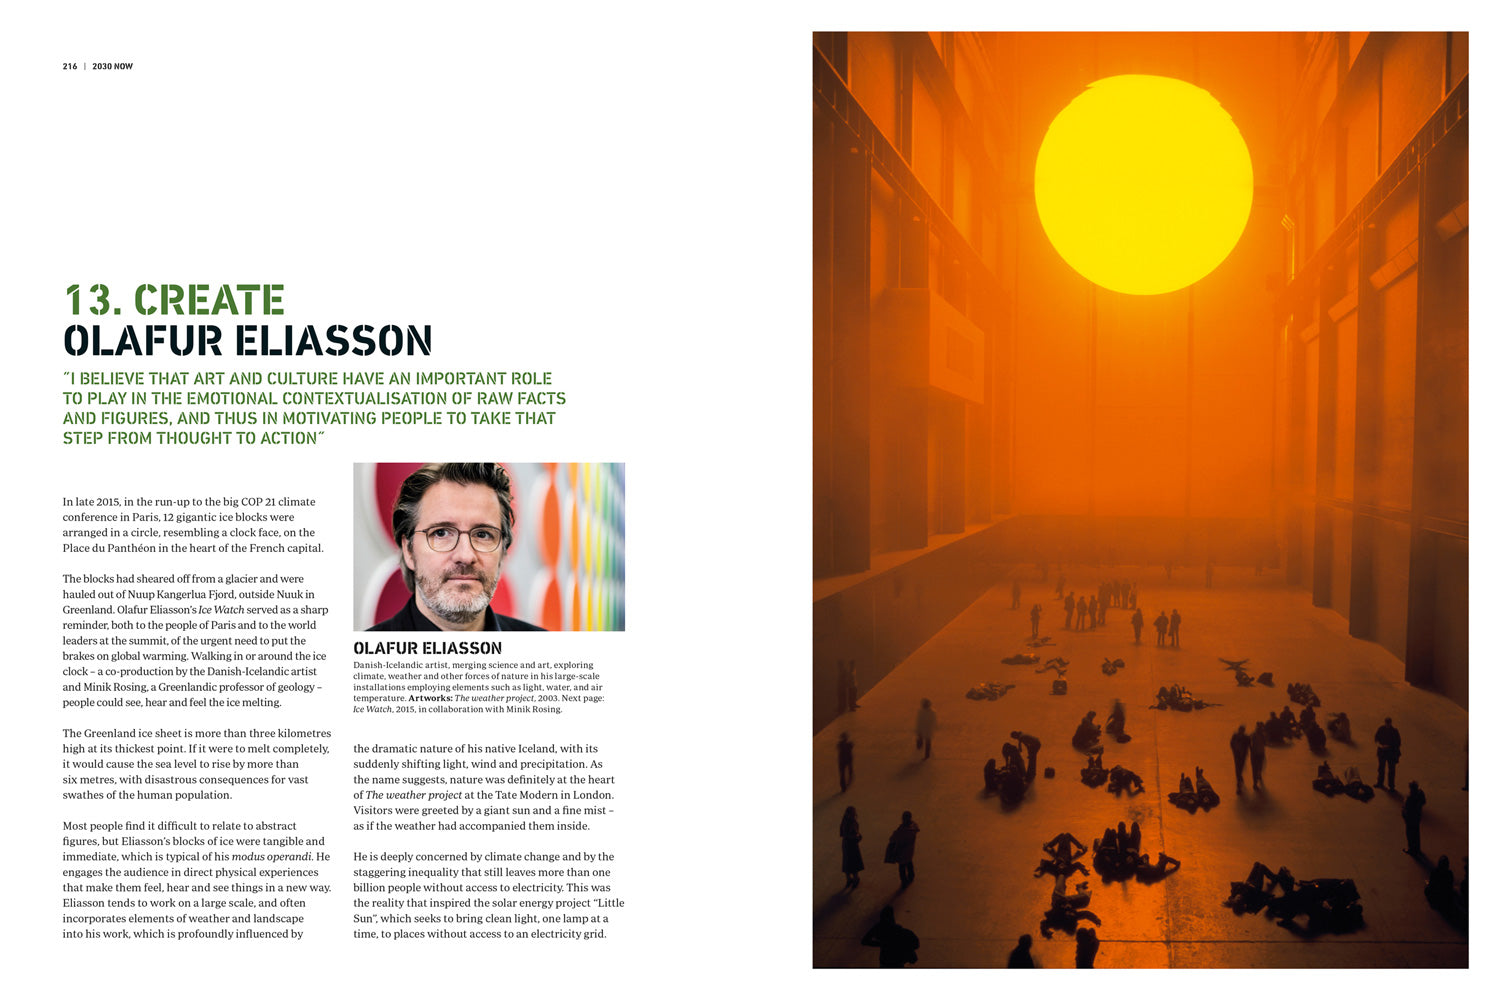 Extract of the book : text on Olafur Eliasson